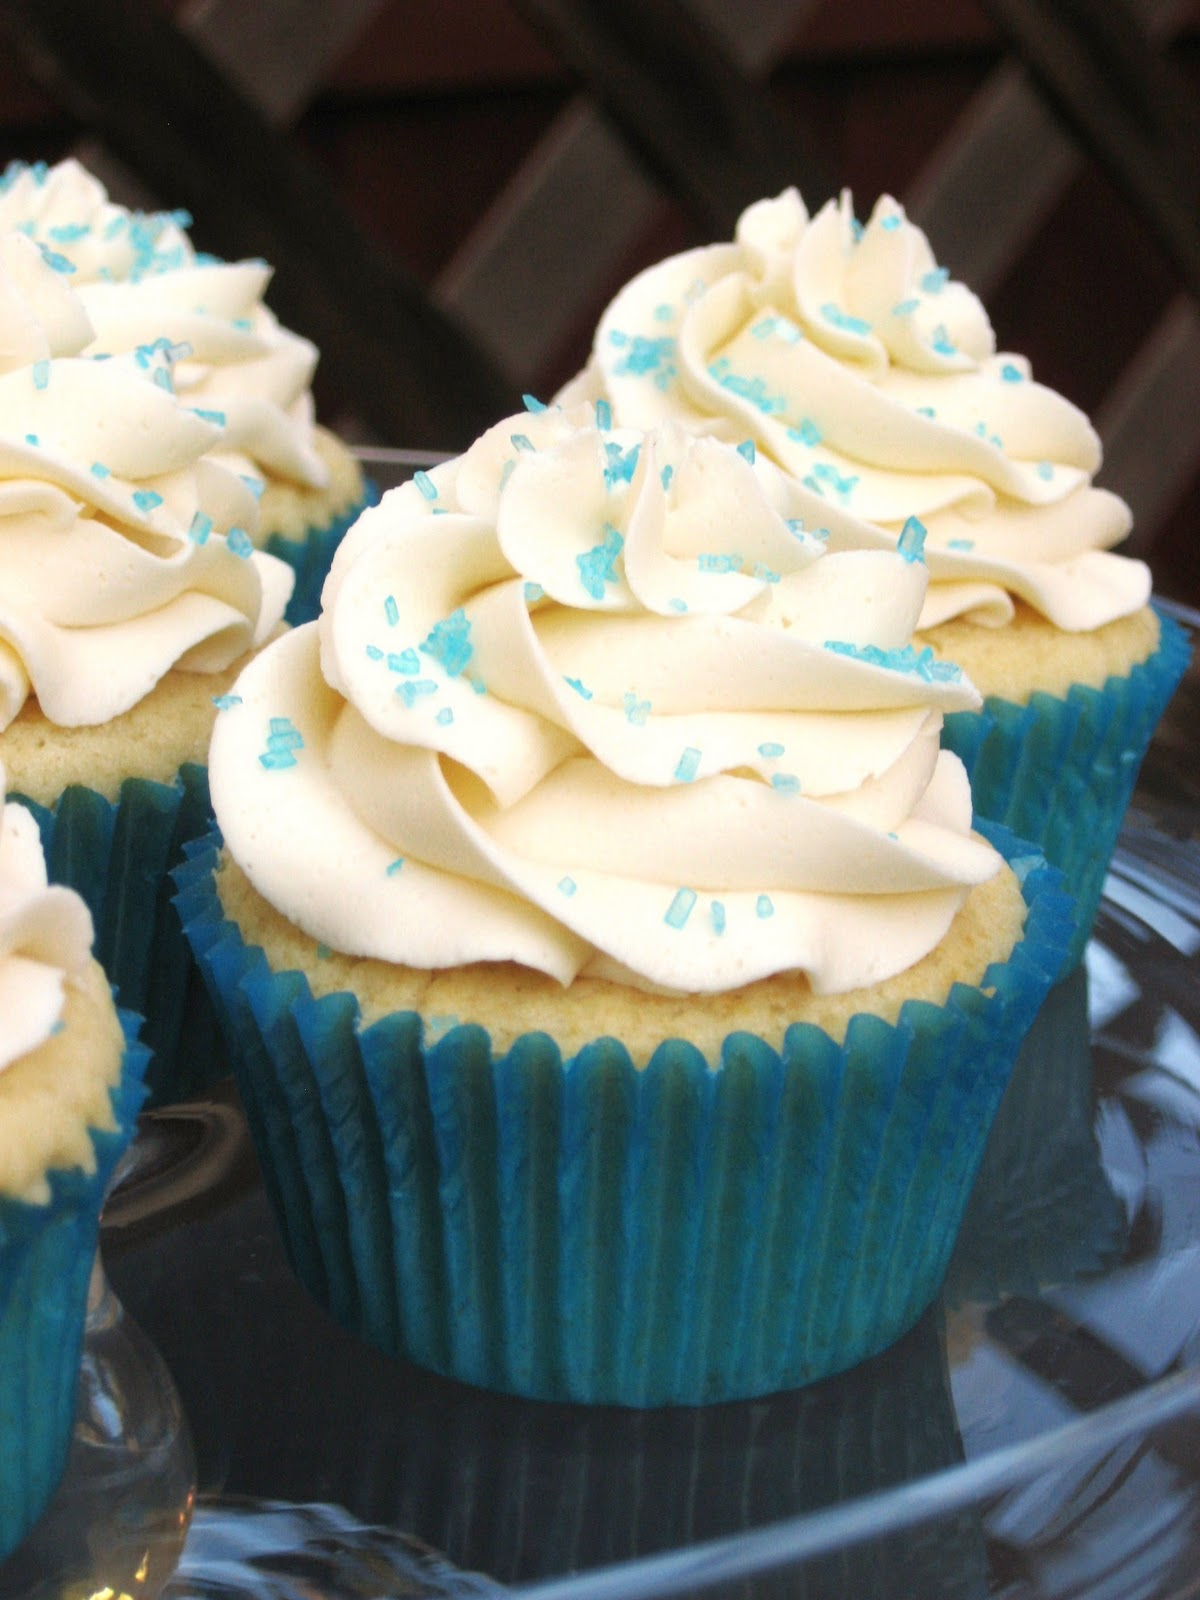 Burn Me Not Vanilla Cupcakes with Buttercream Frosting